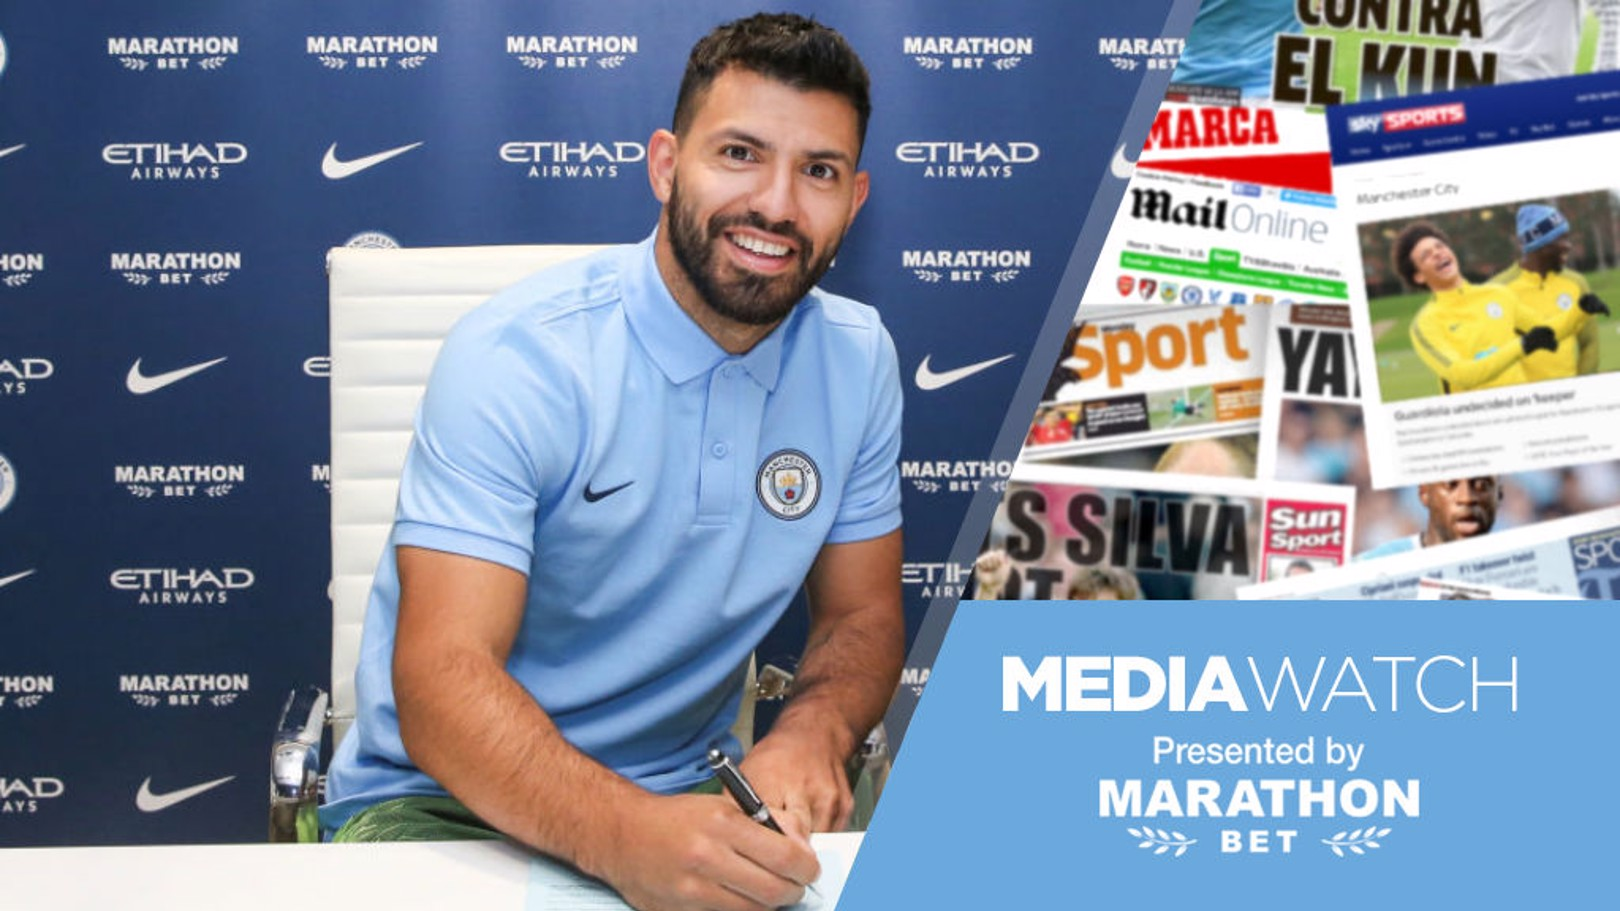 TRUE BLUE: Sergio Aguero has signed a new contract extension with Manchester City